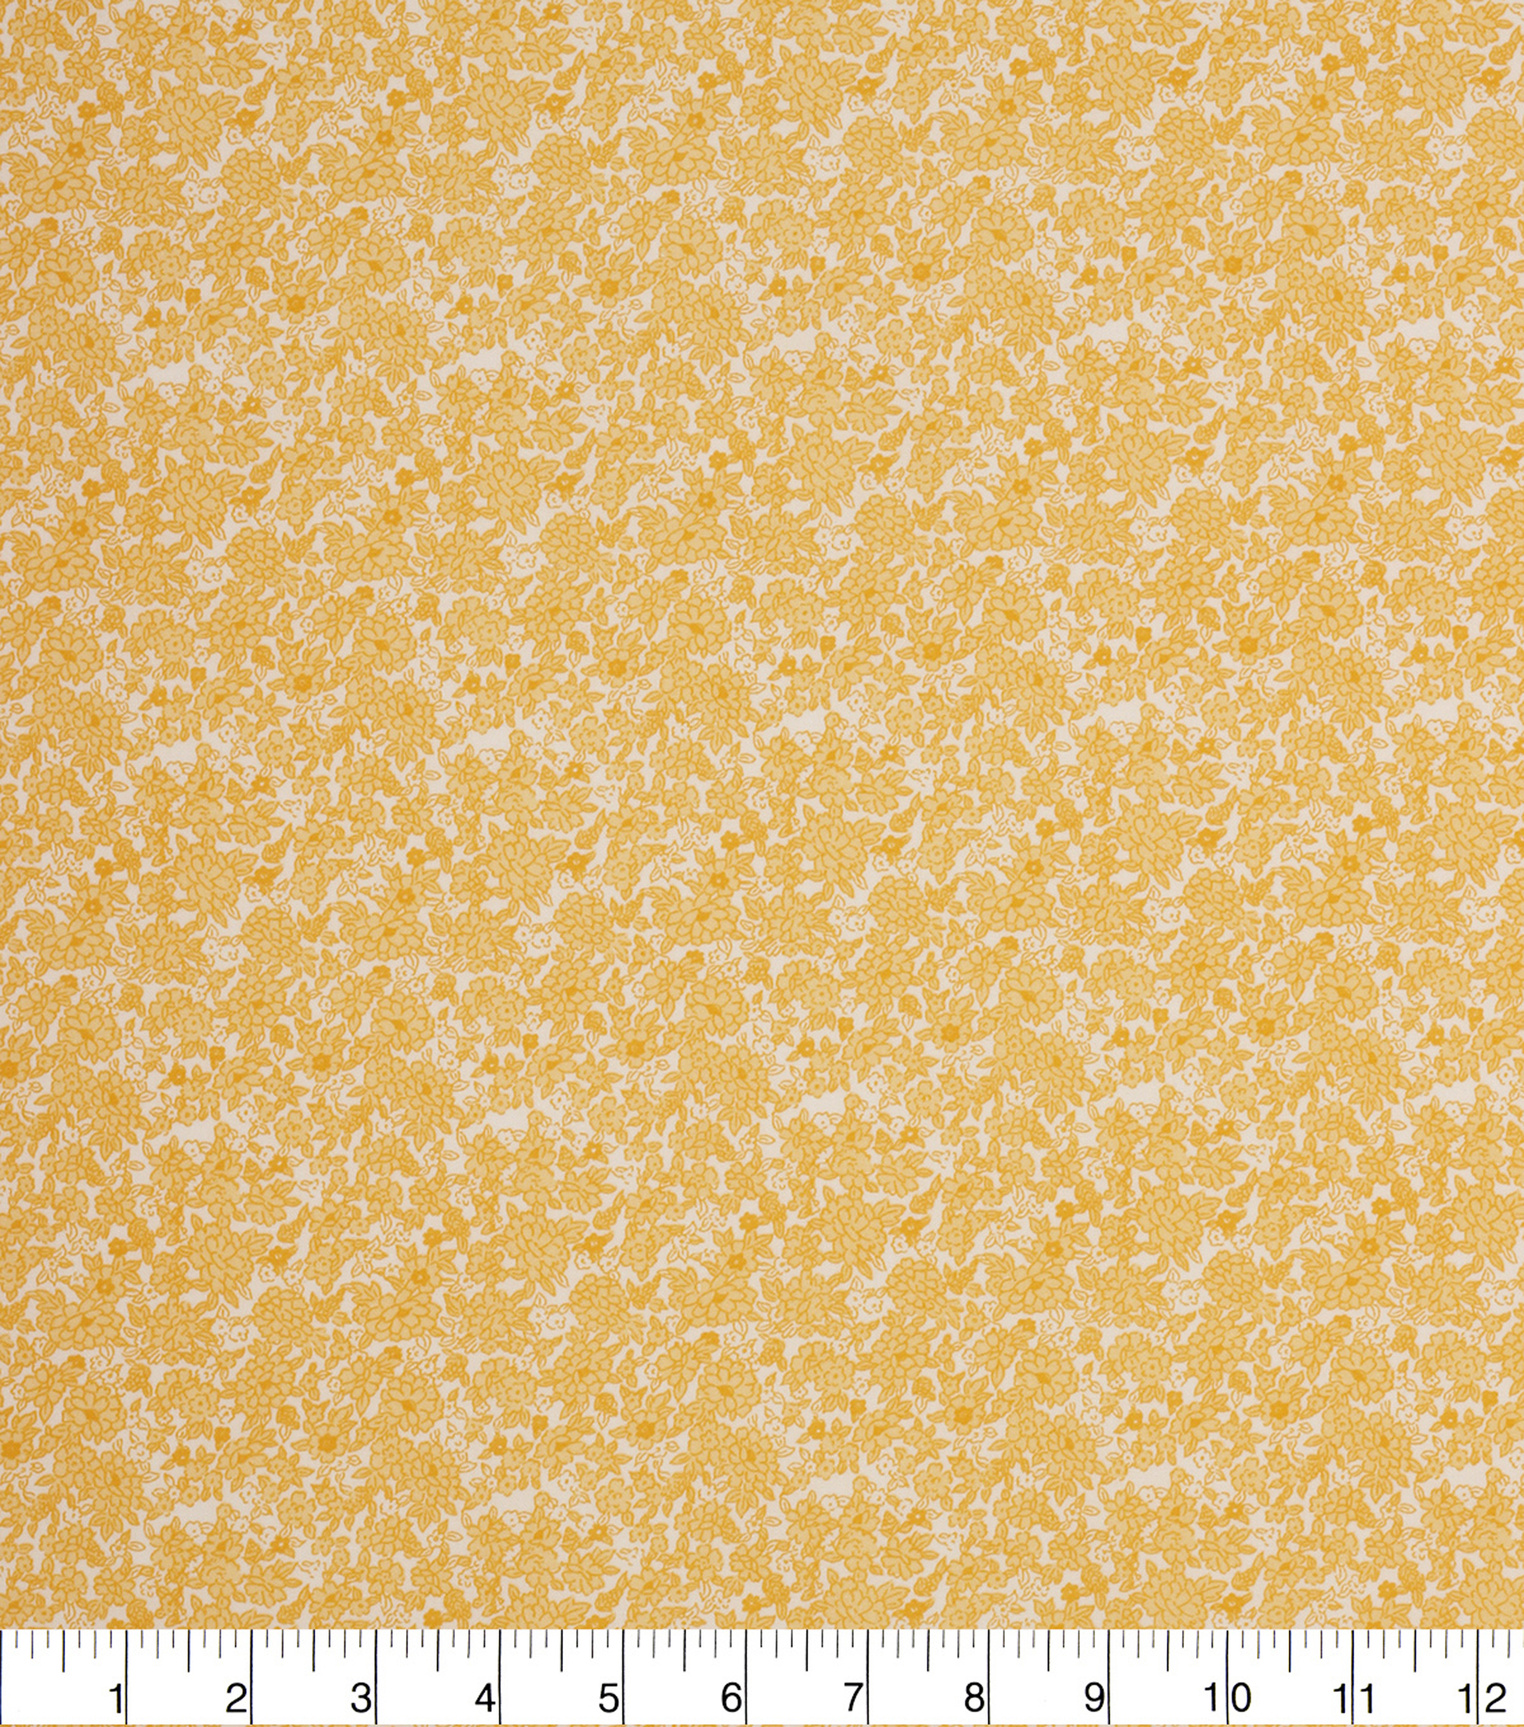 Keepsake Calico Cotton Fabric -Yellow Packed Ditsy Floral